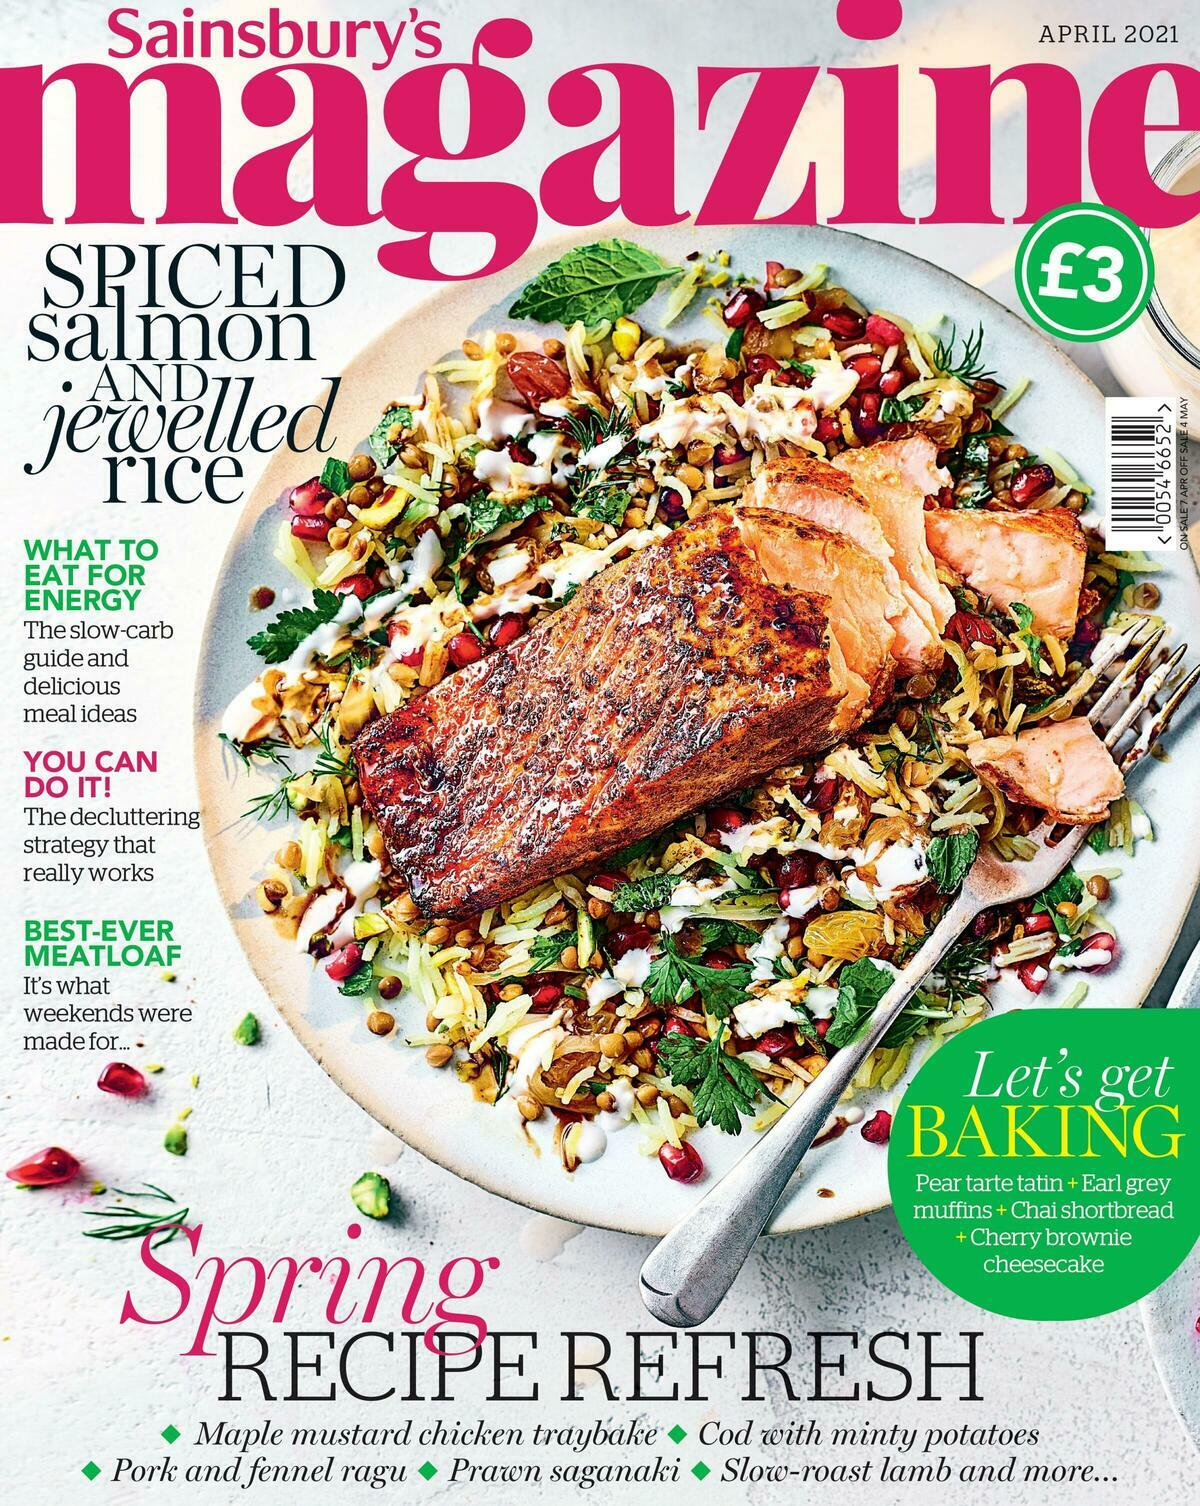 Sainsbury's Magazine April Offers from April 1